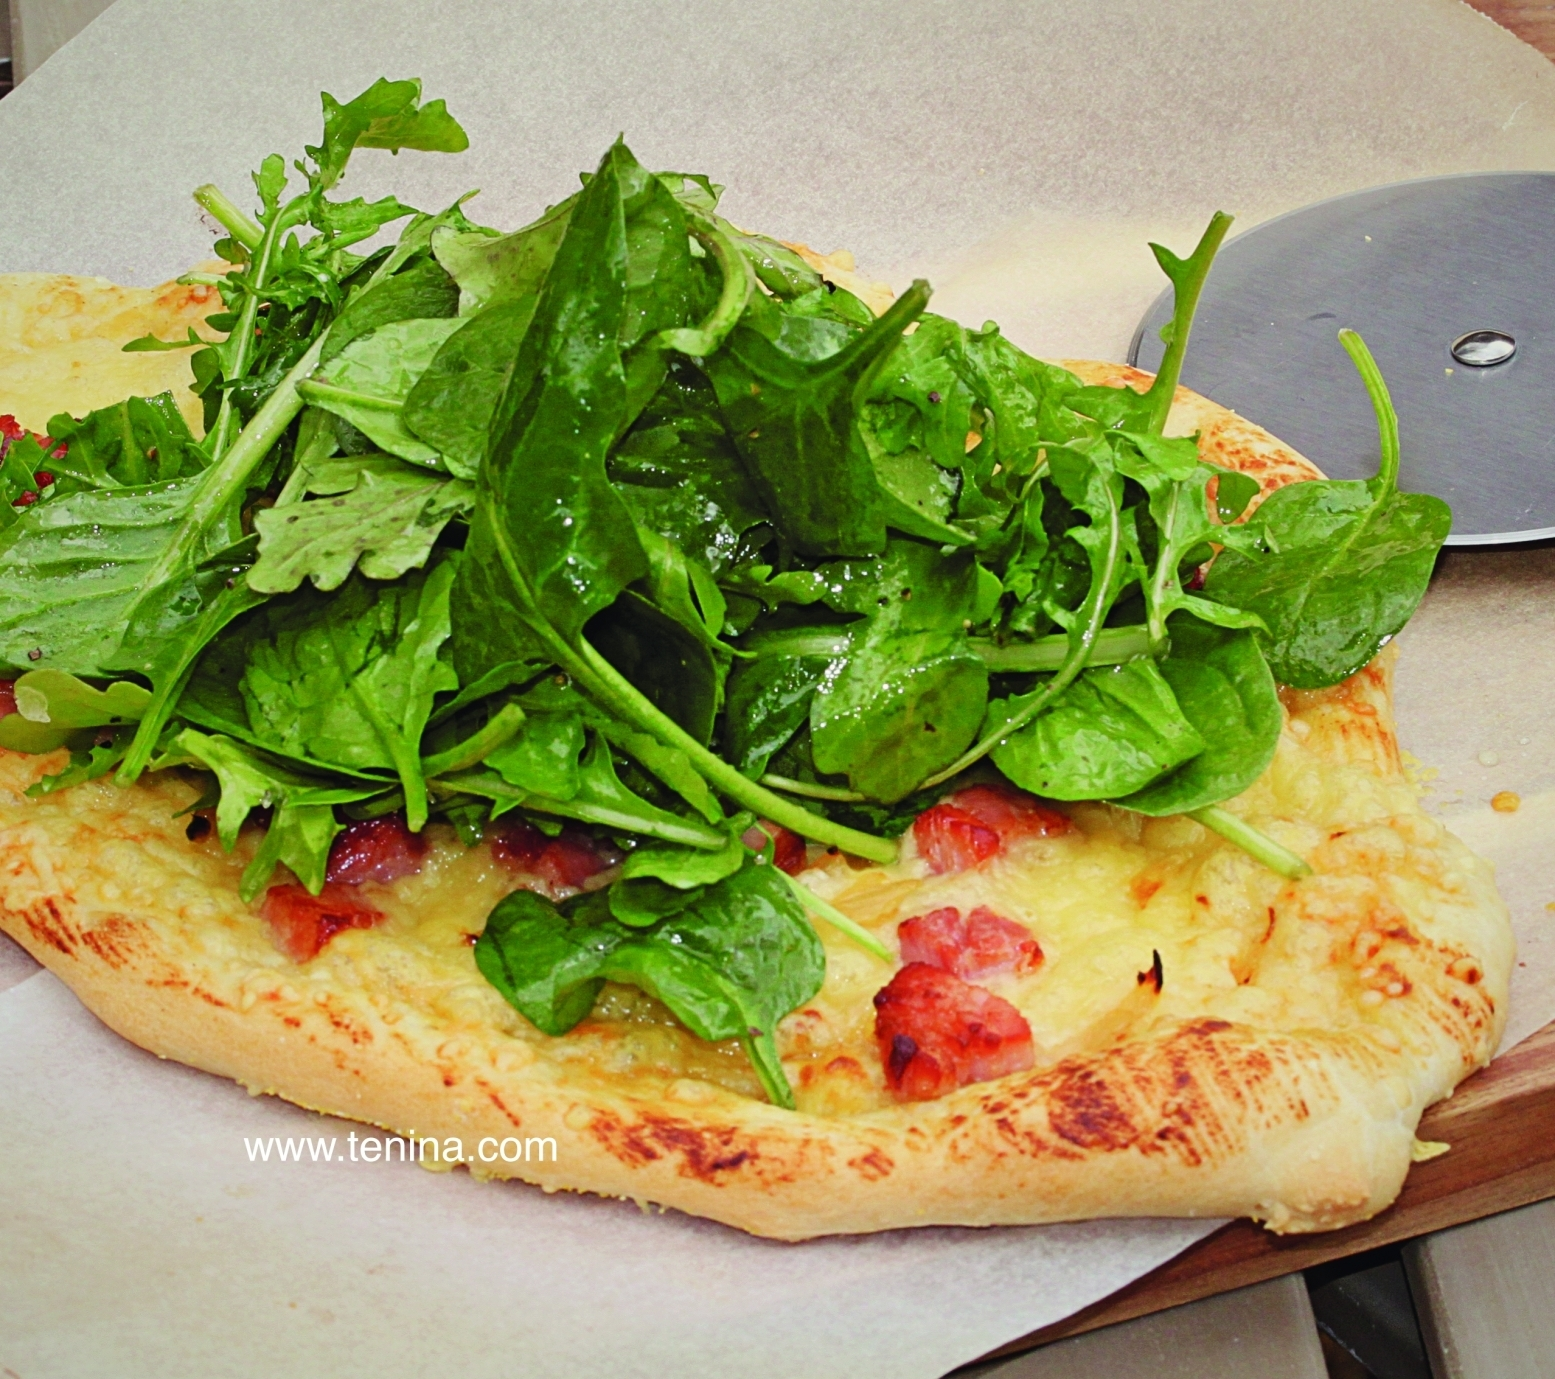 Speck-and-Salad-Pizza.jpg#asset:32722